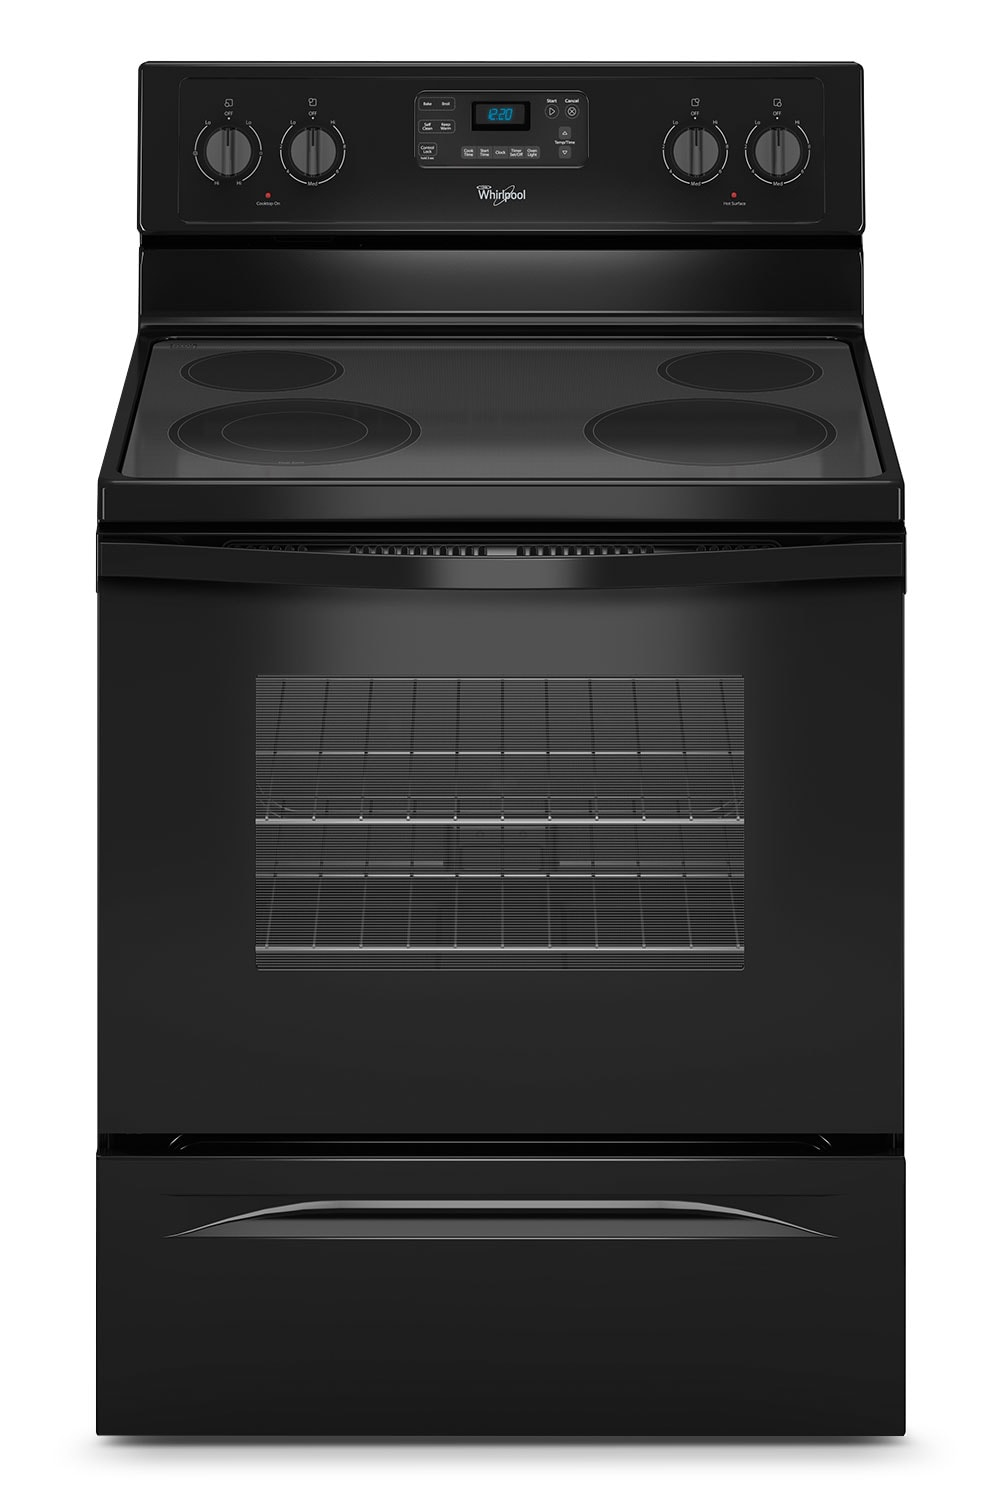 Cooking Products - Whirlpool Black Freestanding Electric Range (5.3 Cu. Ft.) - YWFE515S0EB